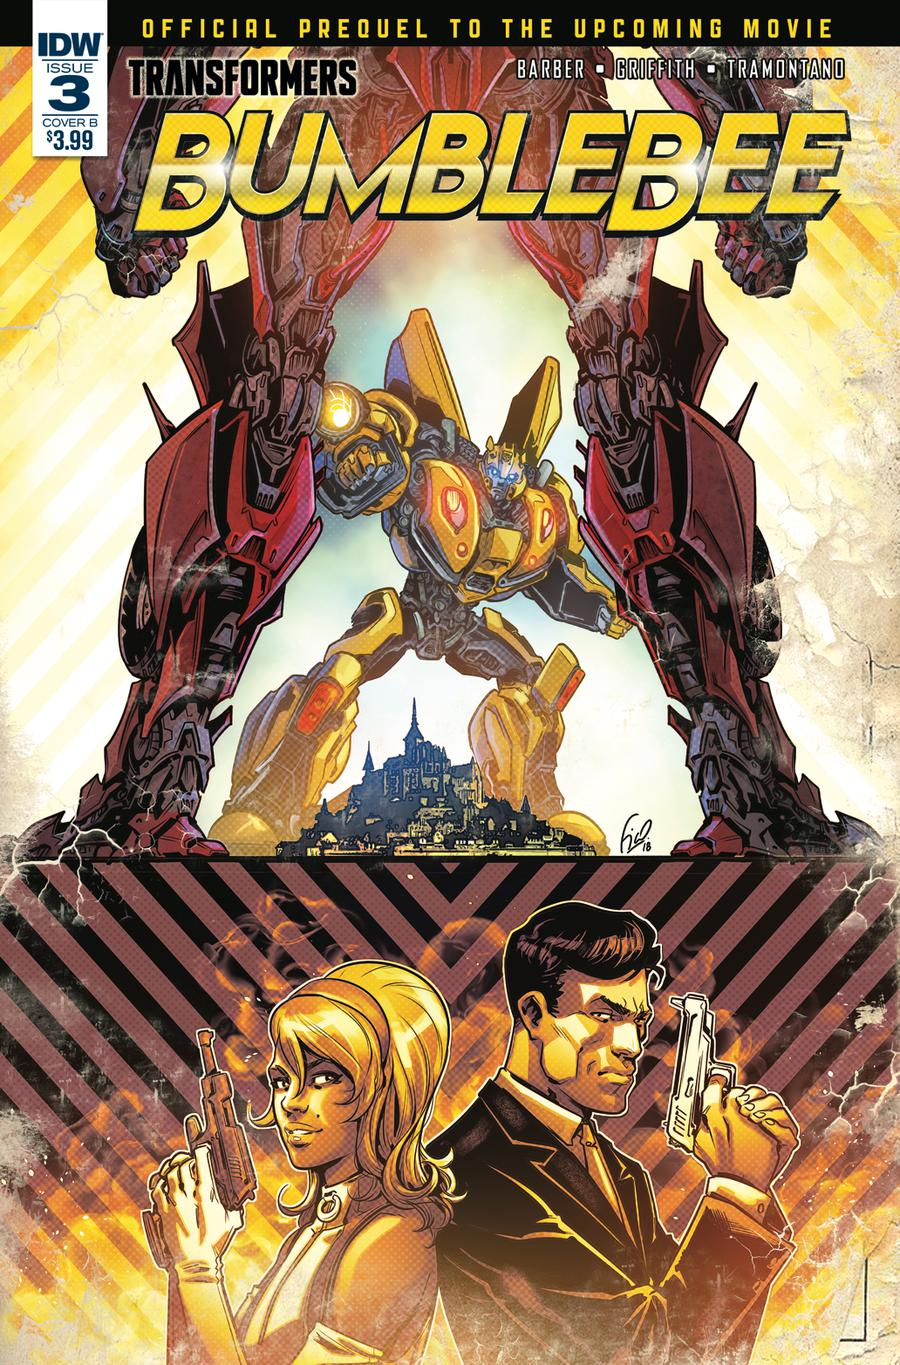 TRANSFORMERS OFFICIAL MOVIE PREQUEL #2 COVER A VARIANT